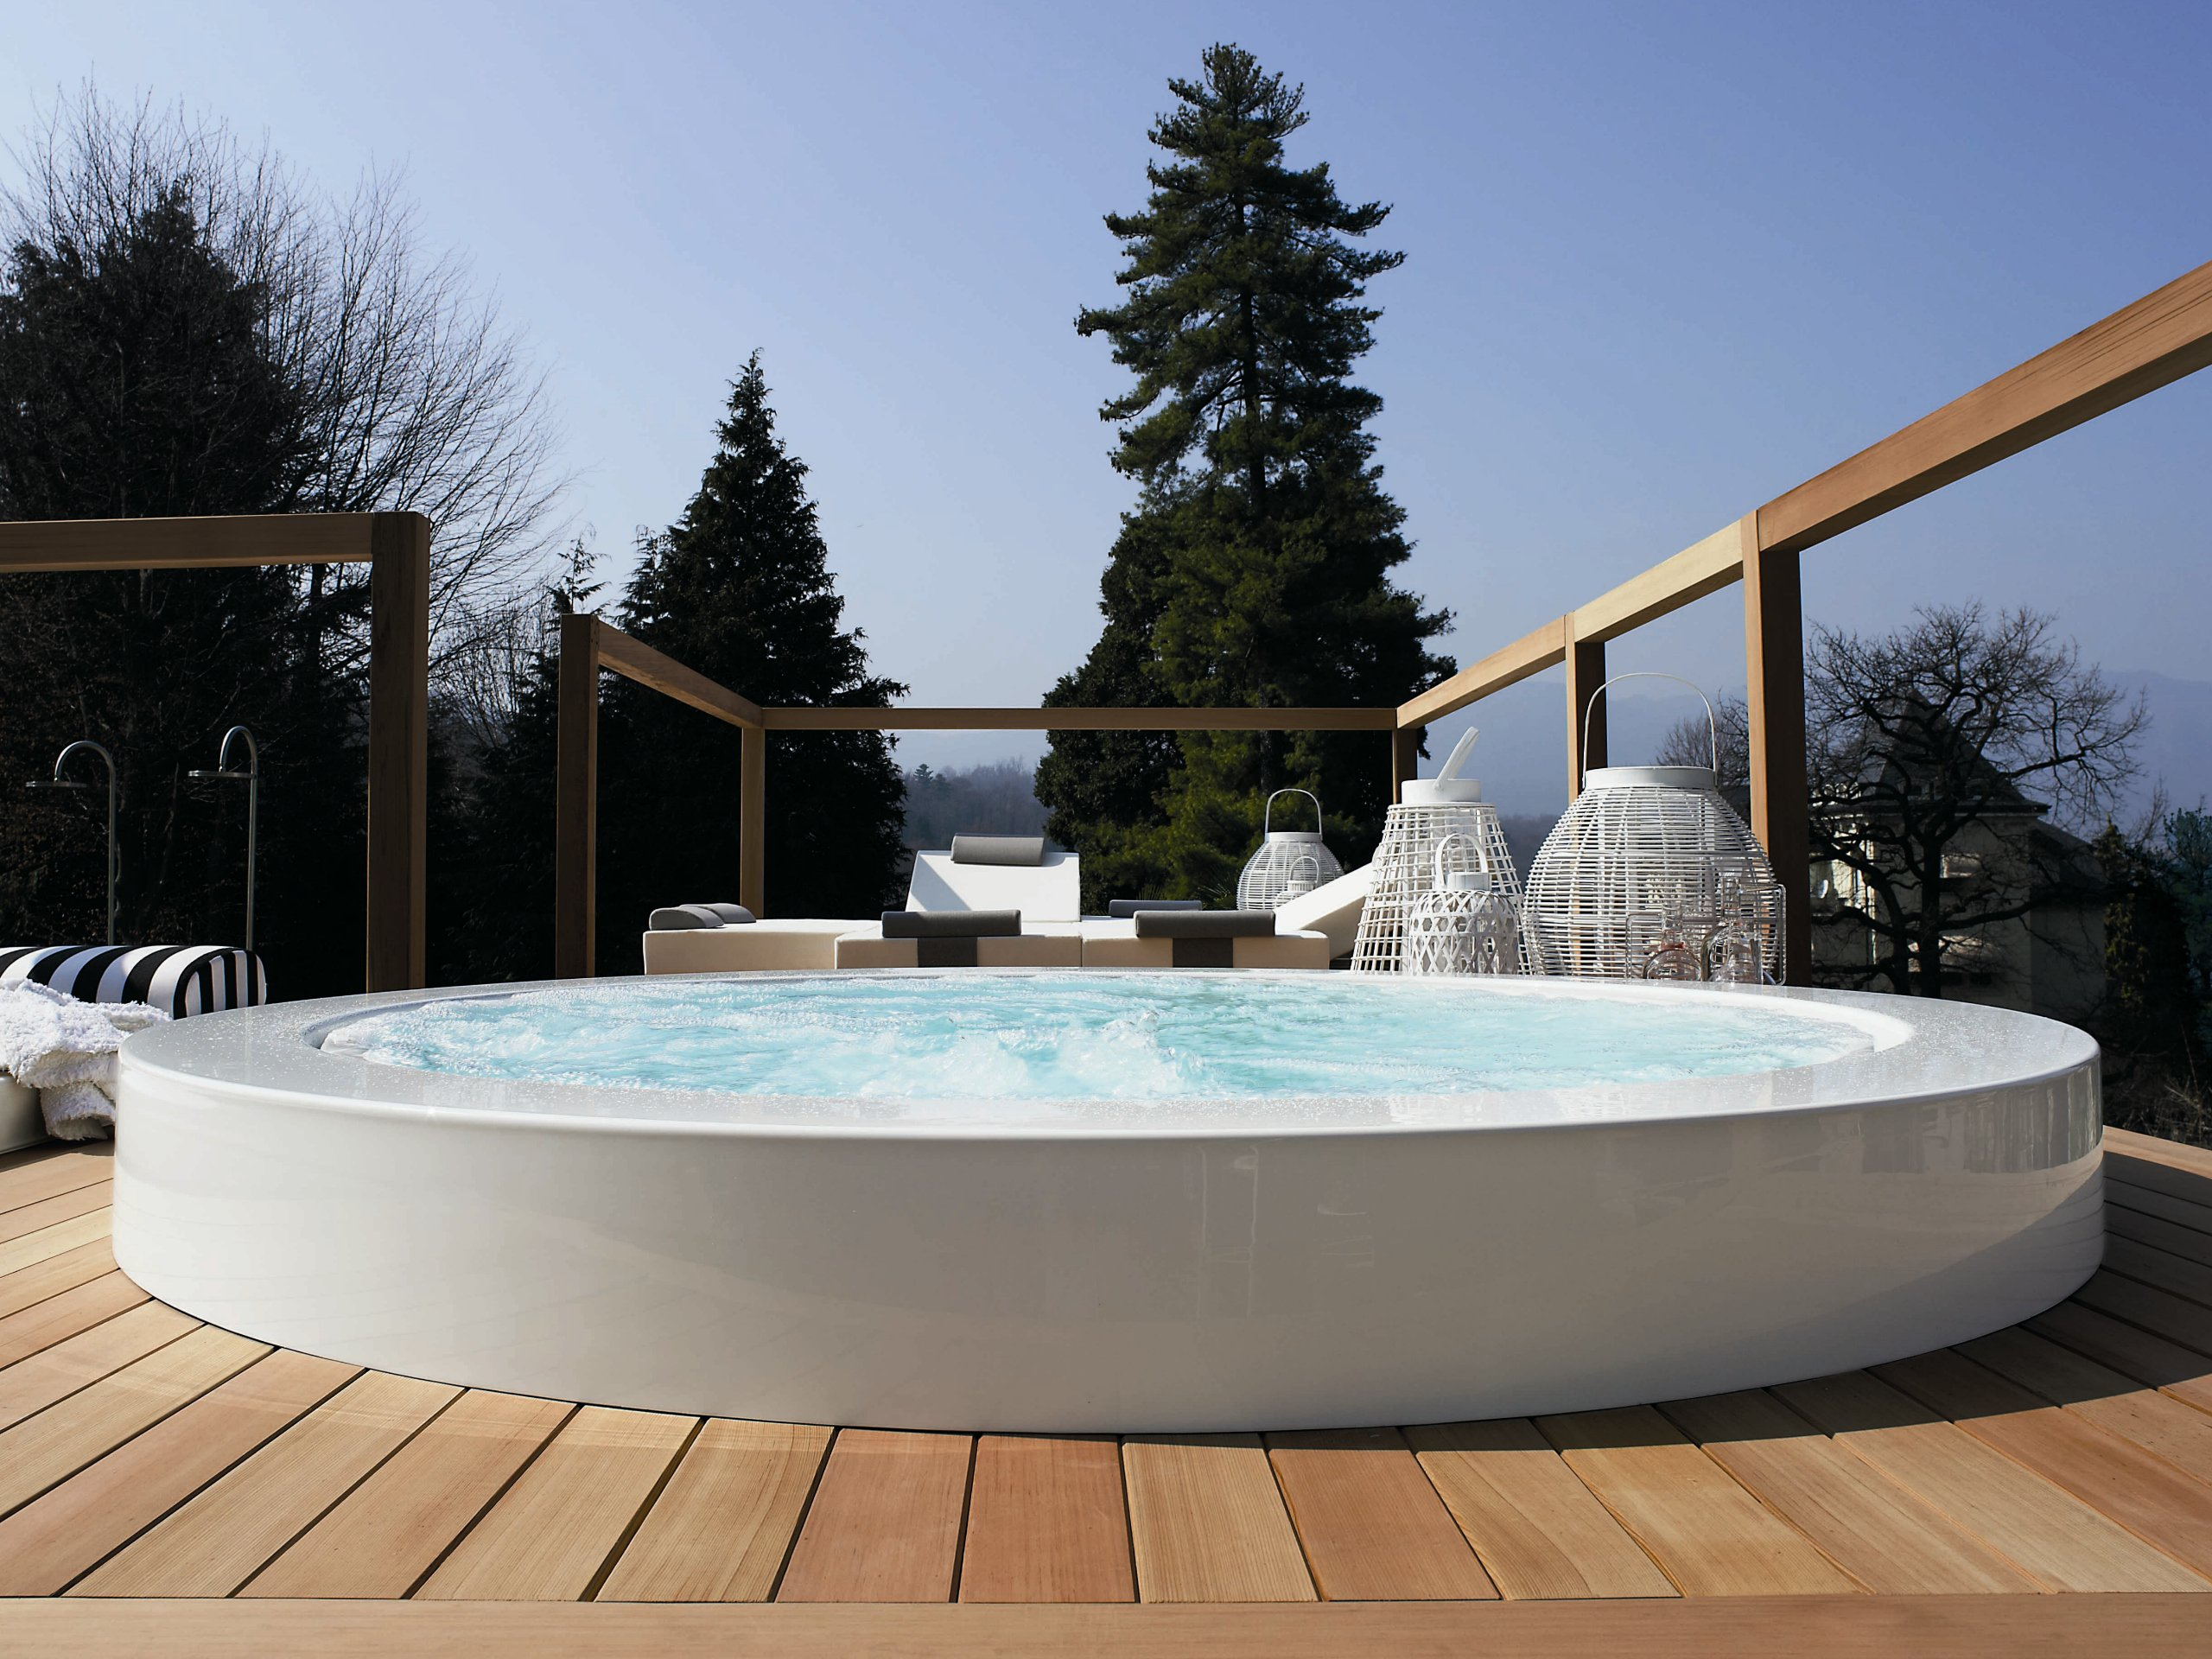 Overflow Outdoor Hot Tub Minipool Built In Hot Tub By Kos